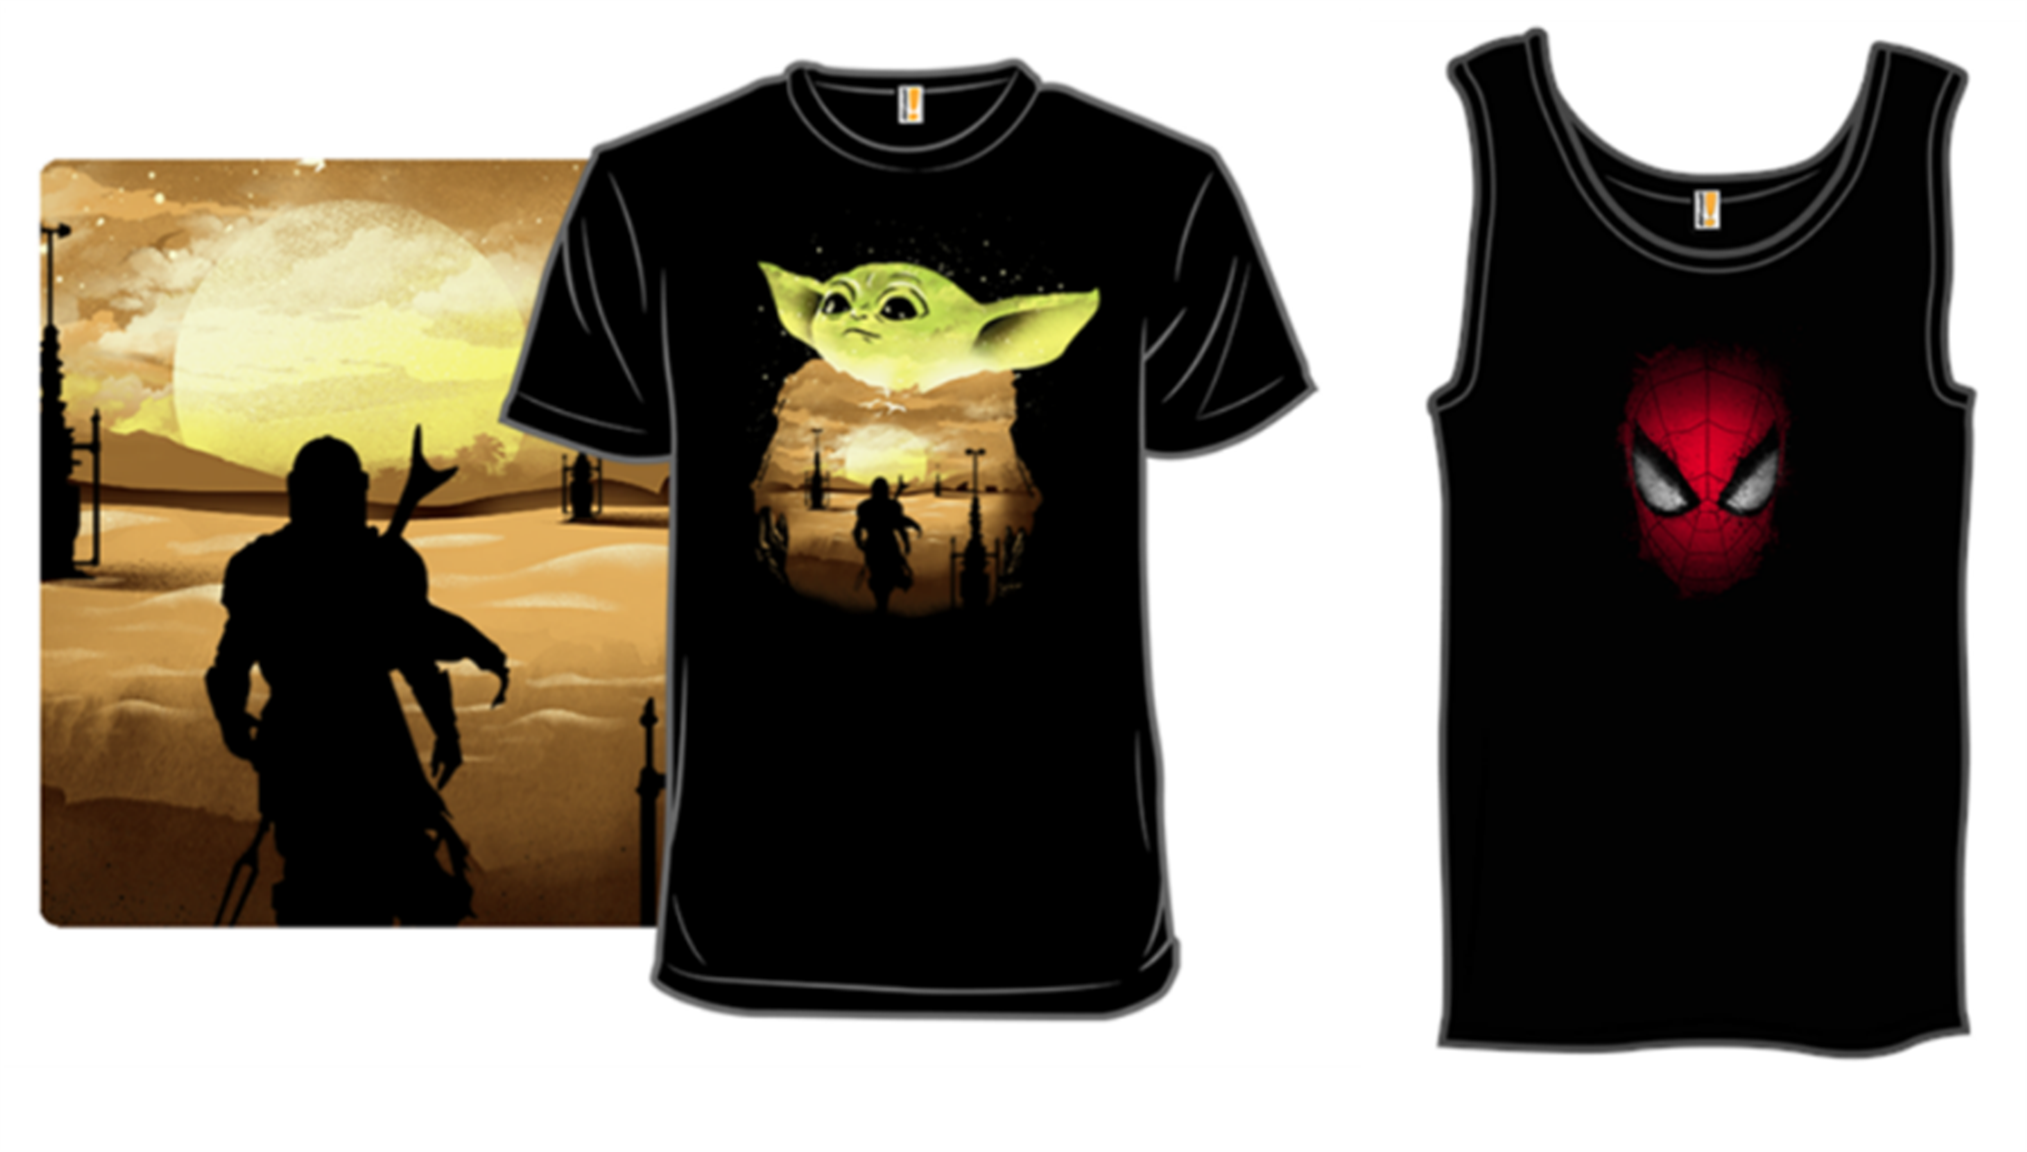 Woot.com – BOGO Free T-Shirts + Free Shipping! Yoda, Spiderman, Storm Trooper and Lots More!